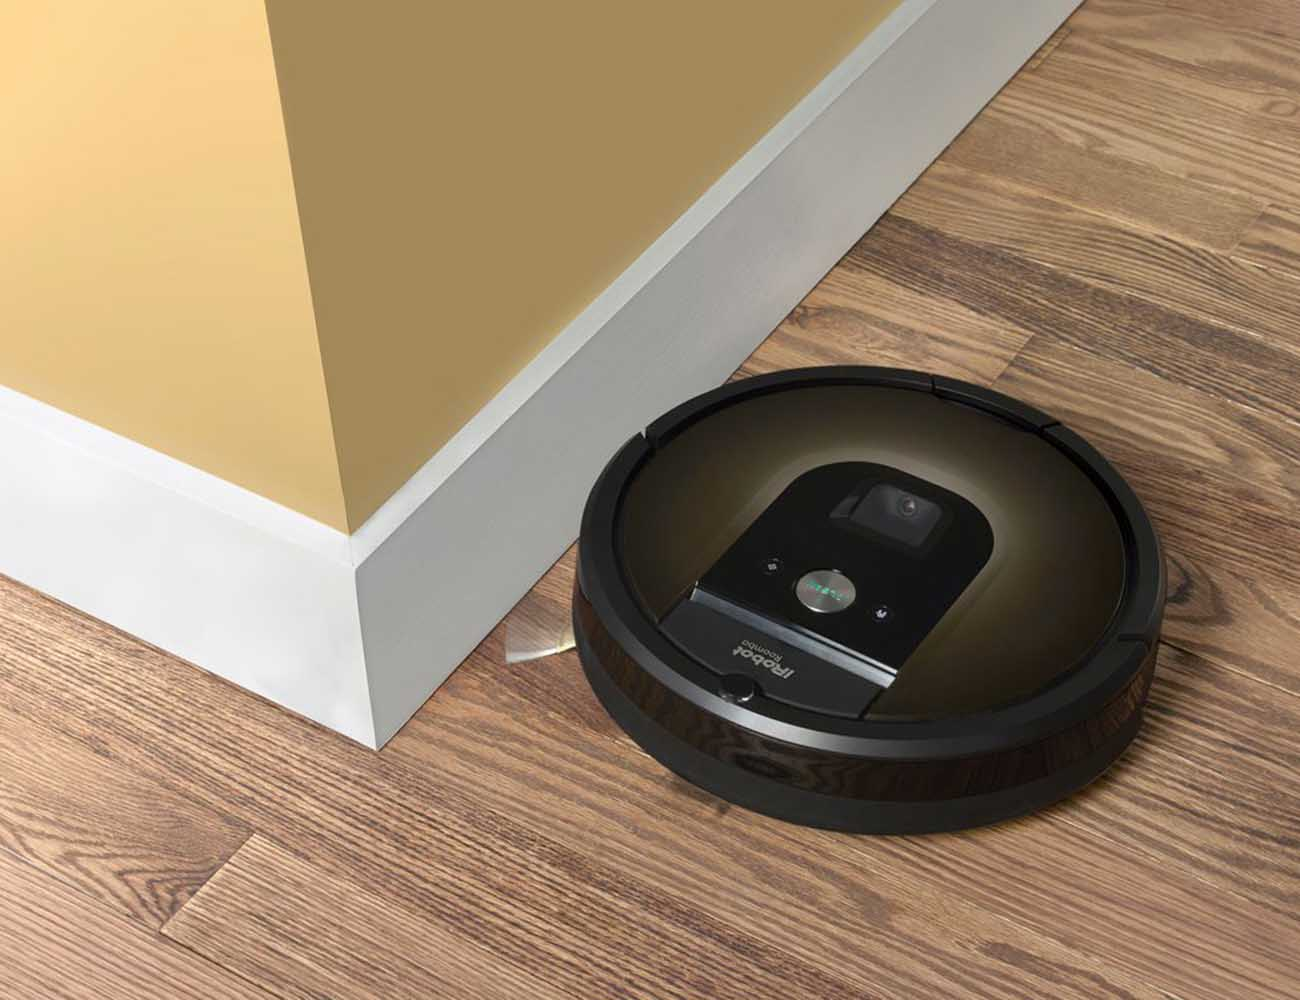 Roomba 980 – Vacuum Cleaning Robot by iRobot